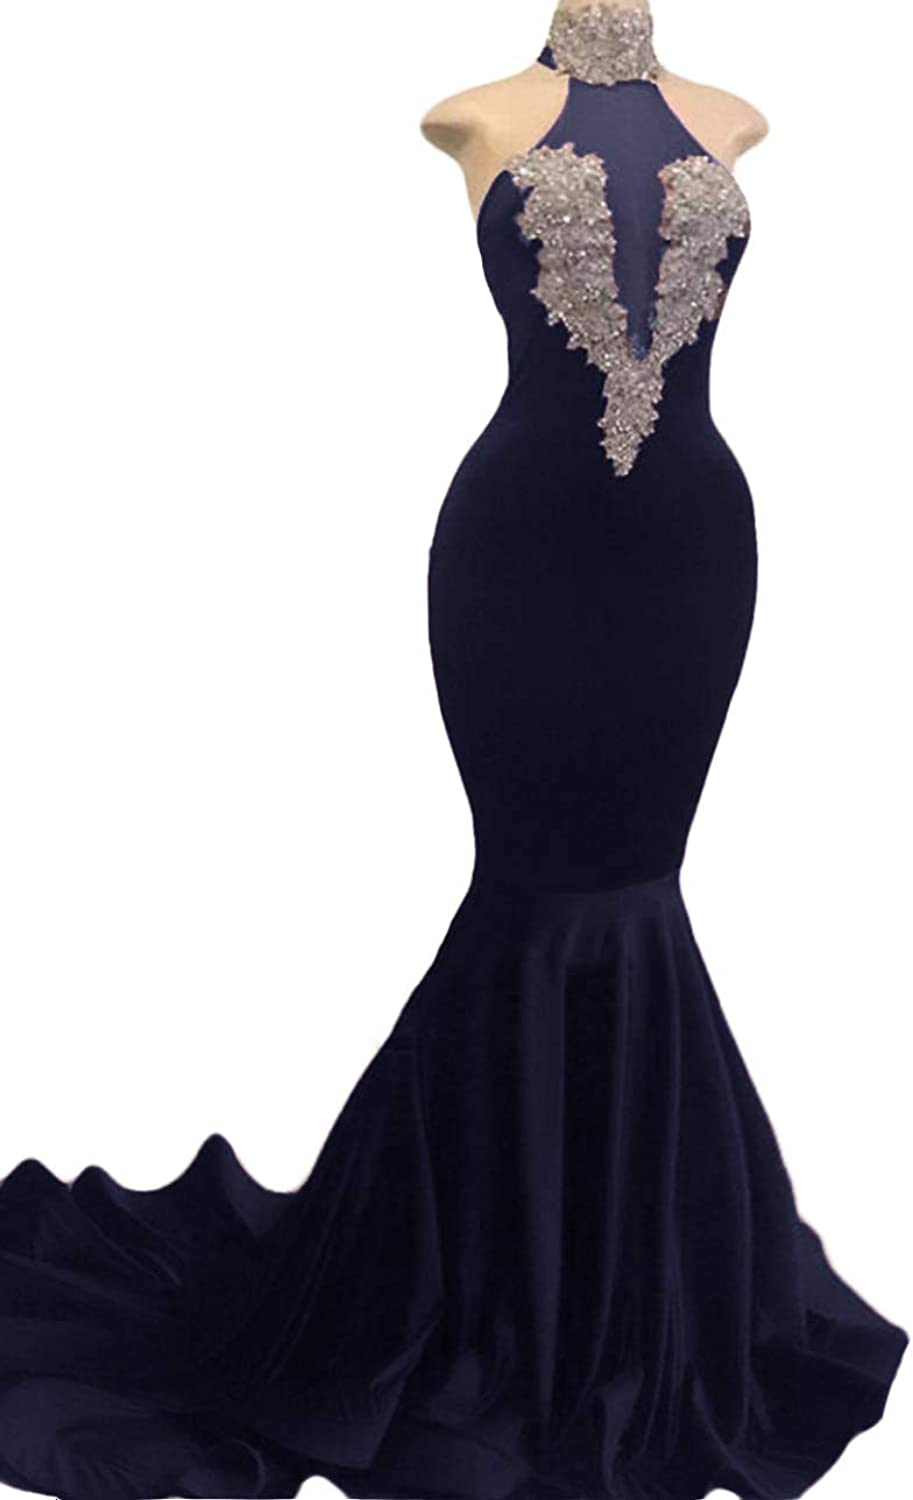 WZW 2019 Mermaid Prom Dresses Sparkly Sequins High Neck Sweep Train Formal Party Evening Gowns